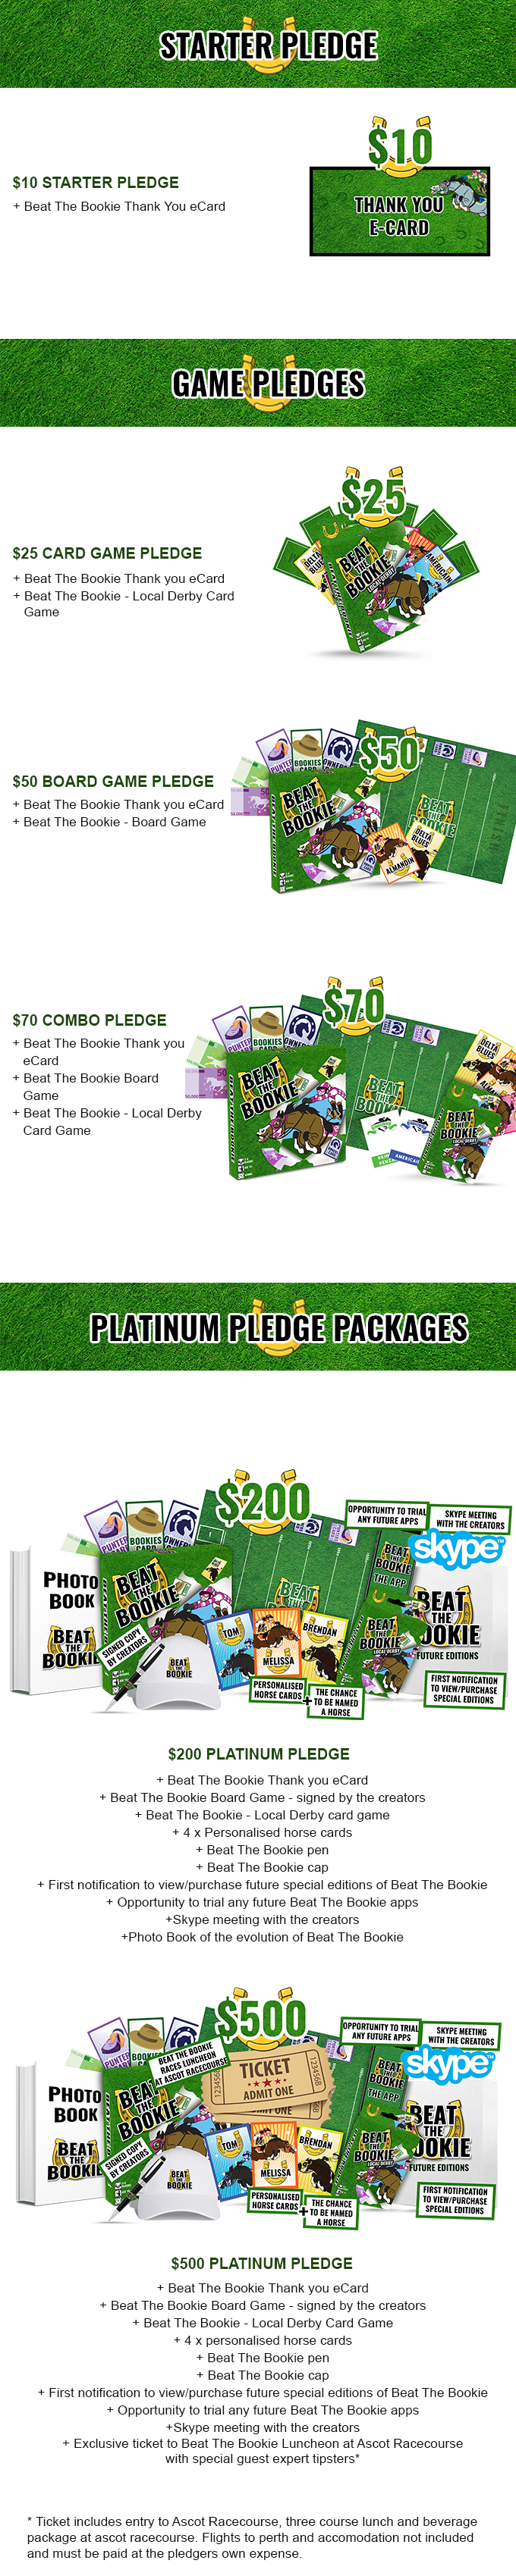 BackIt com - Beat The Bookie - Horse Racing Board Game and